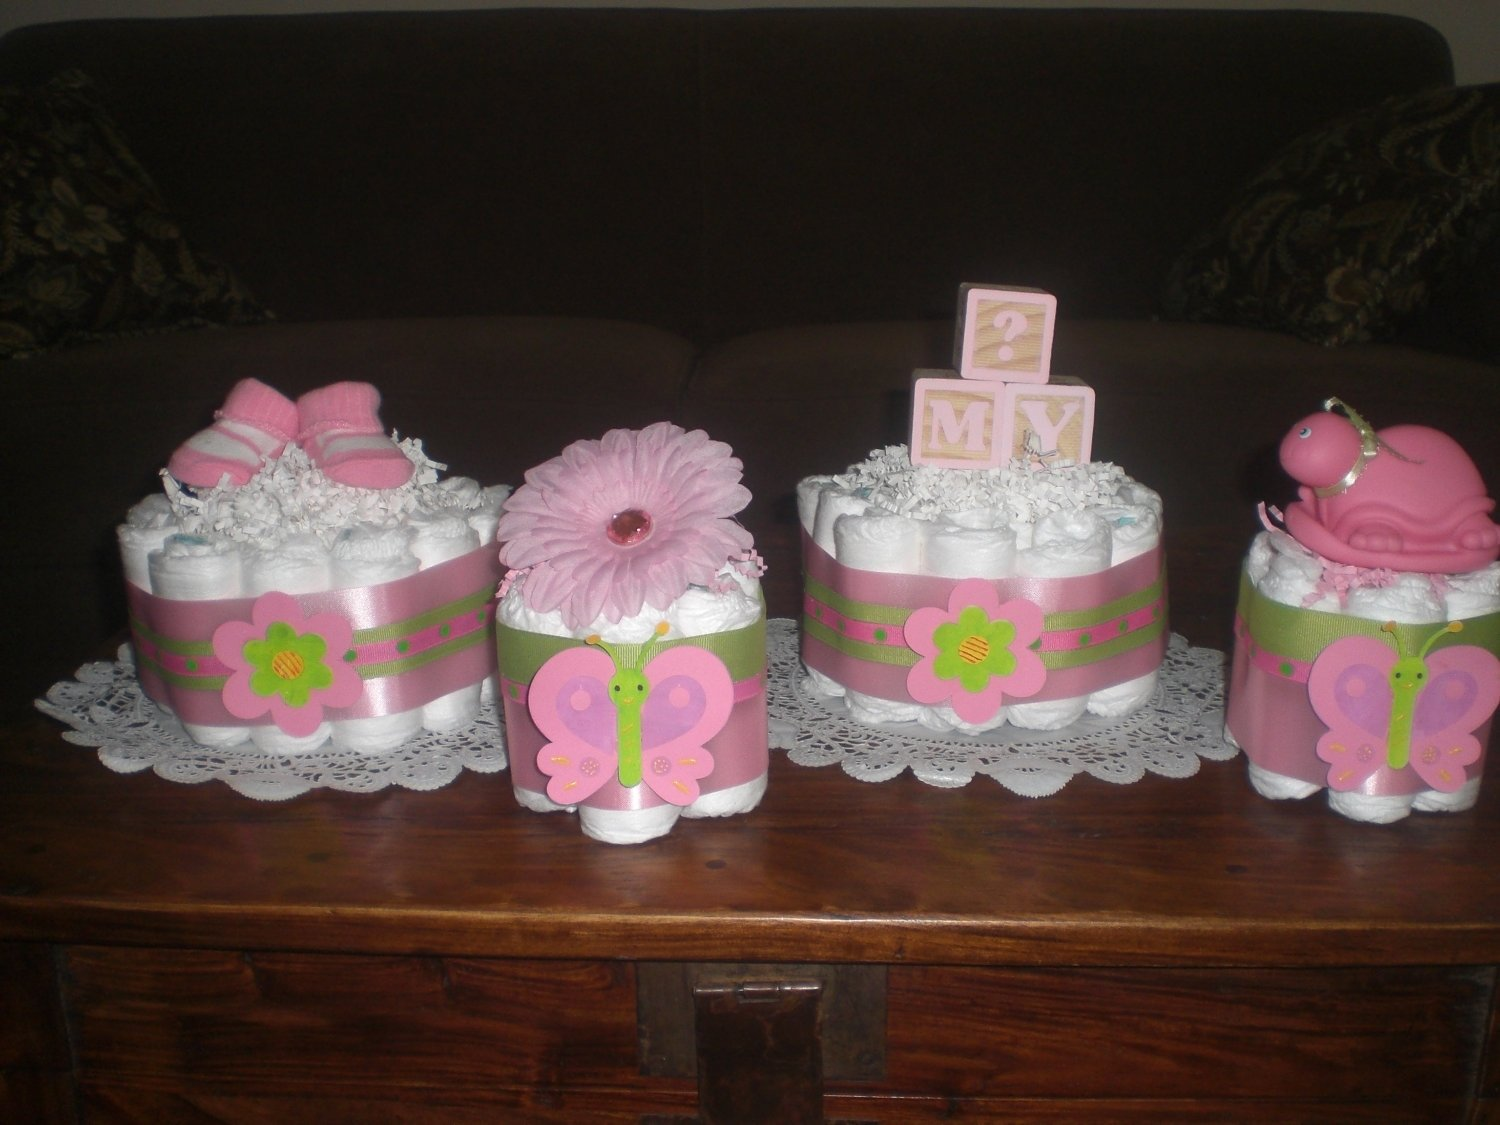 10 Famous Pink And Green Baby Shower Ideas interesting design diaper ideas for baby shower spectacular homemade 2020